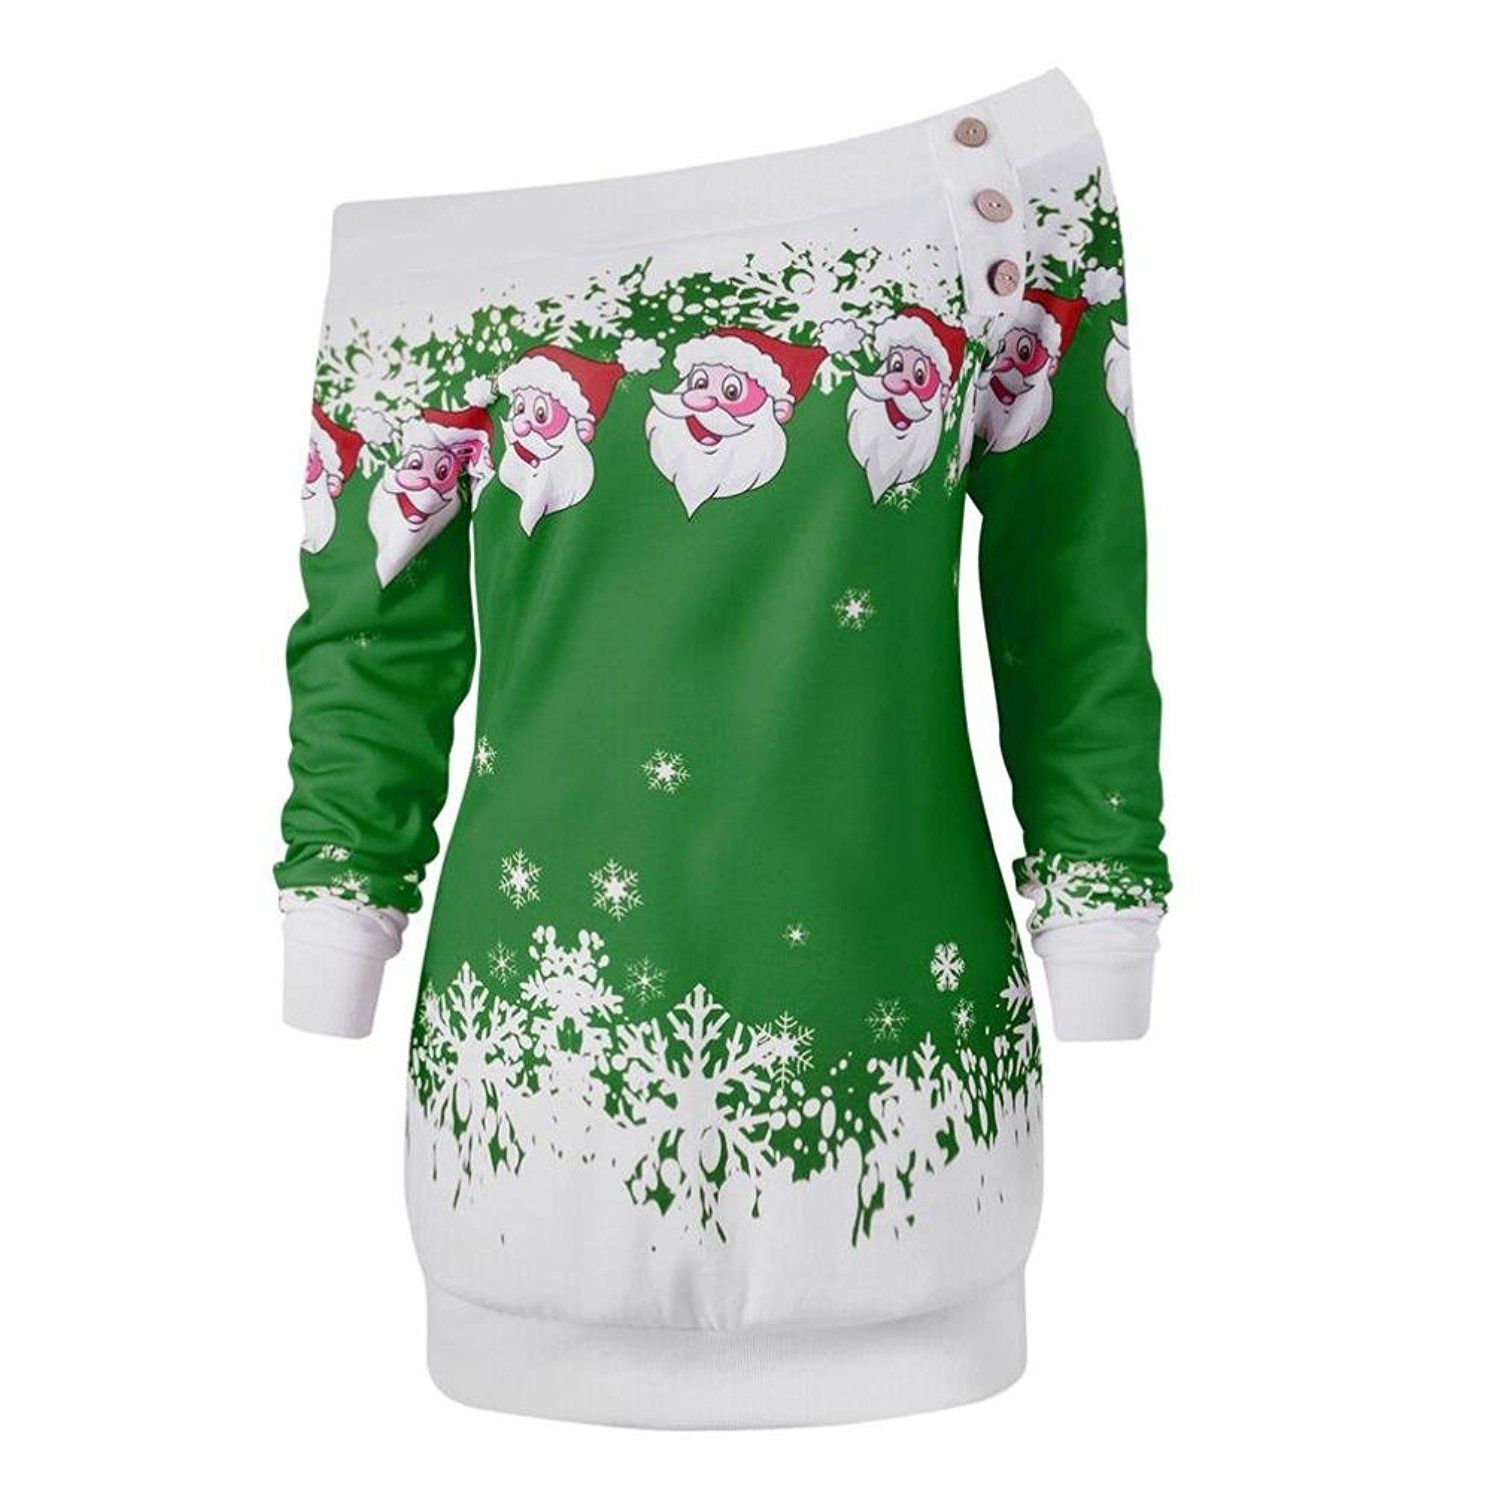 d9c958fe3cdd71 Get Quotations · Boomboom Christmas Women Blouse